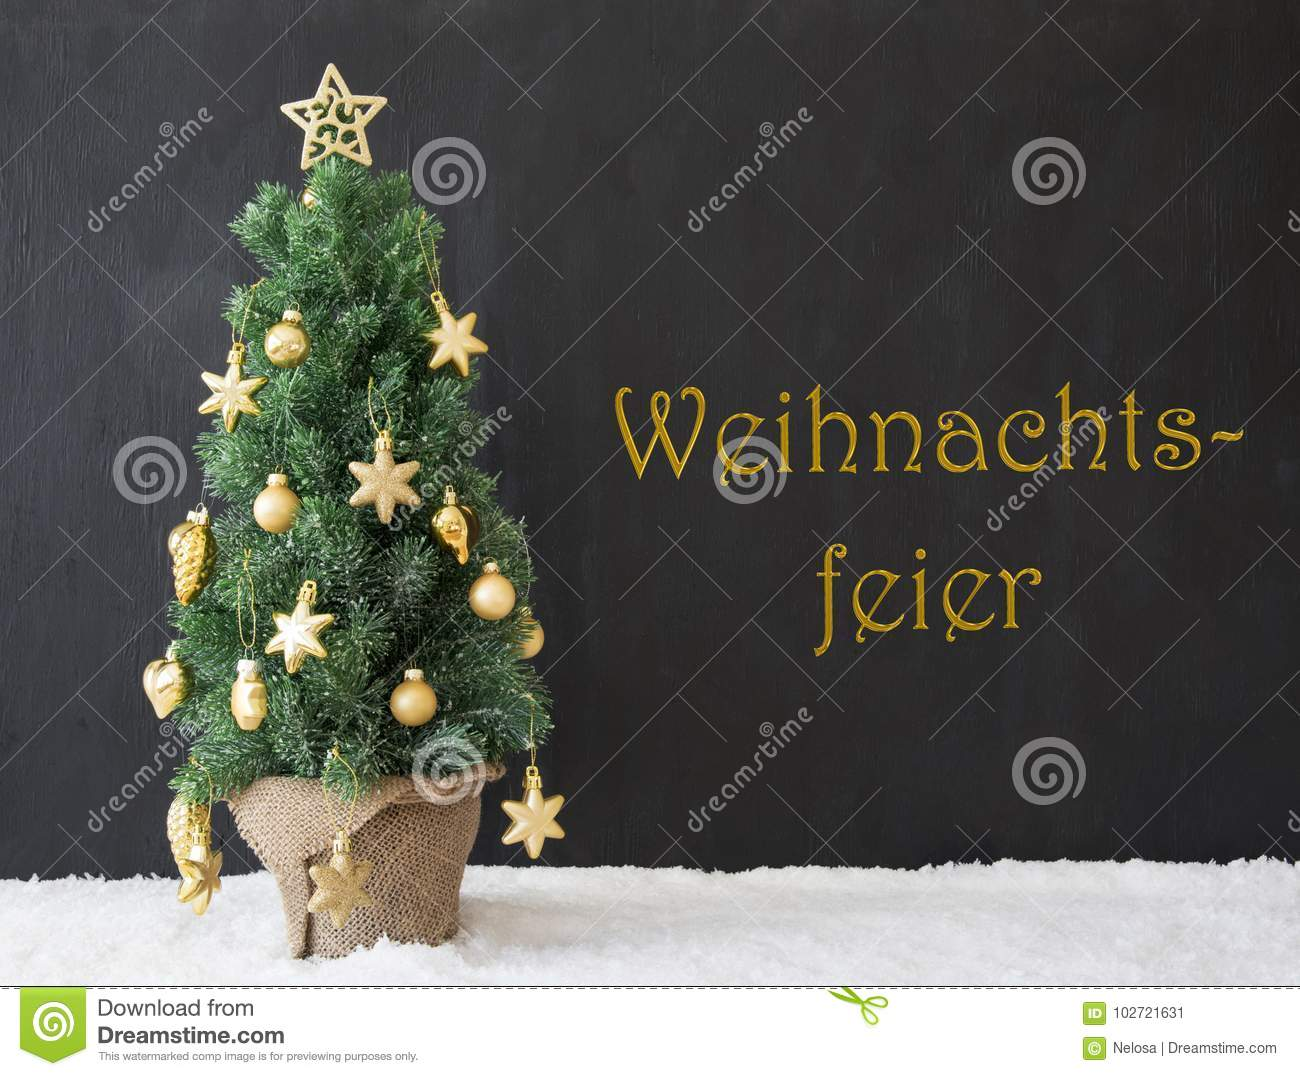 Weihnachtsfeier Style.Tree Weihnachtsfeier Means Christmas Party Black Concrete Stock